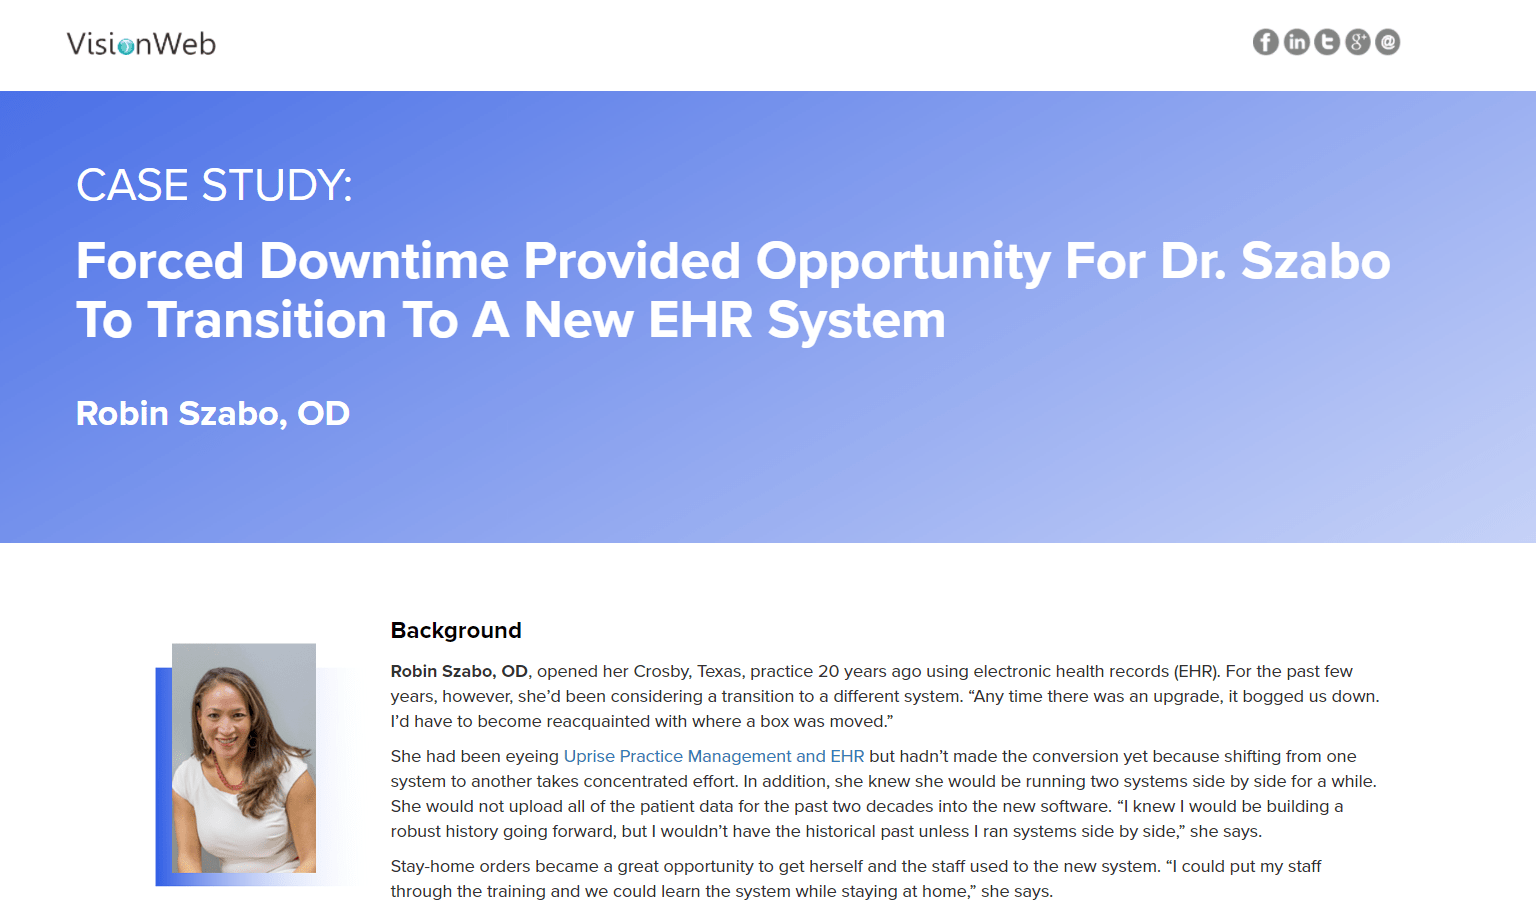 Forced Downtime Provided Opportunity For Dr. Szabo To Transition To A New EHR System